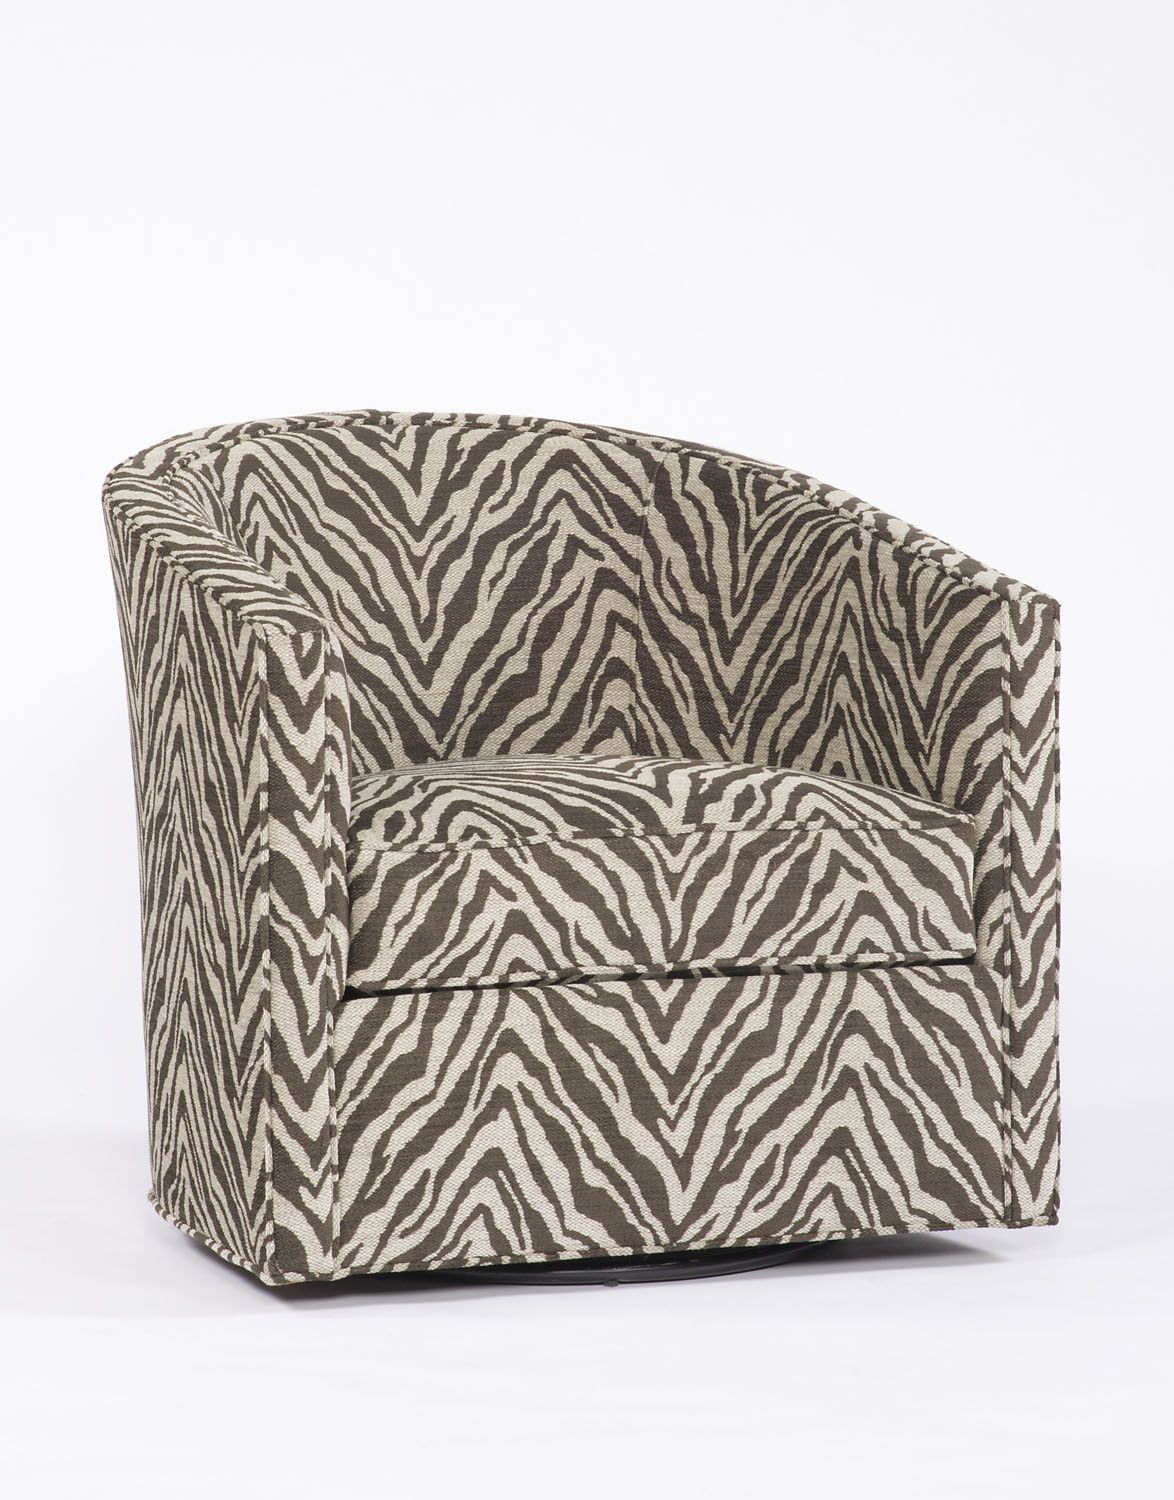 Transitions Sadie Barrel Chair | Products | Pinterest | Products In Sadie Ii Swivel Accent Chairs (View 8 of 20)